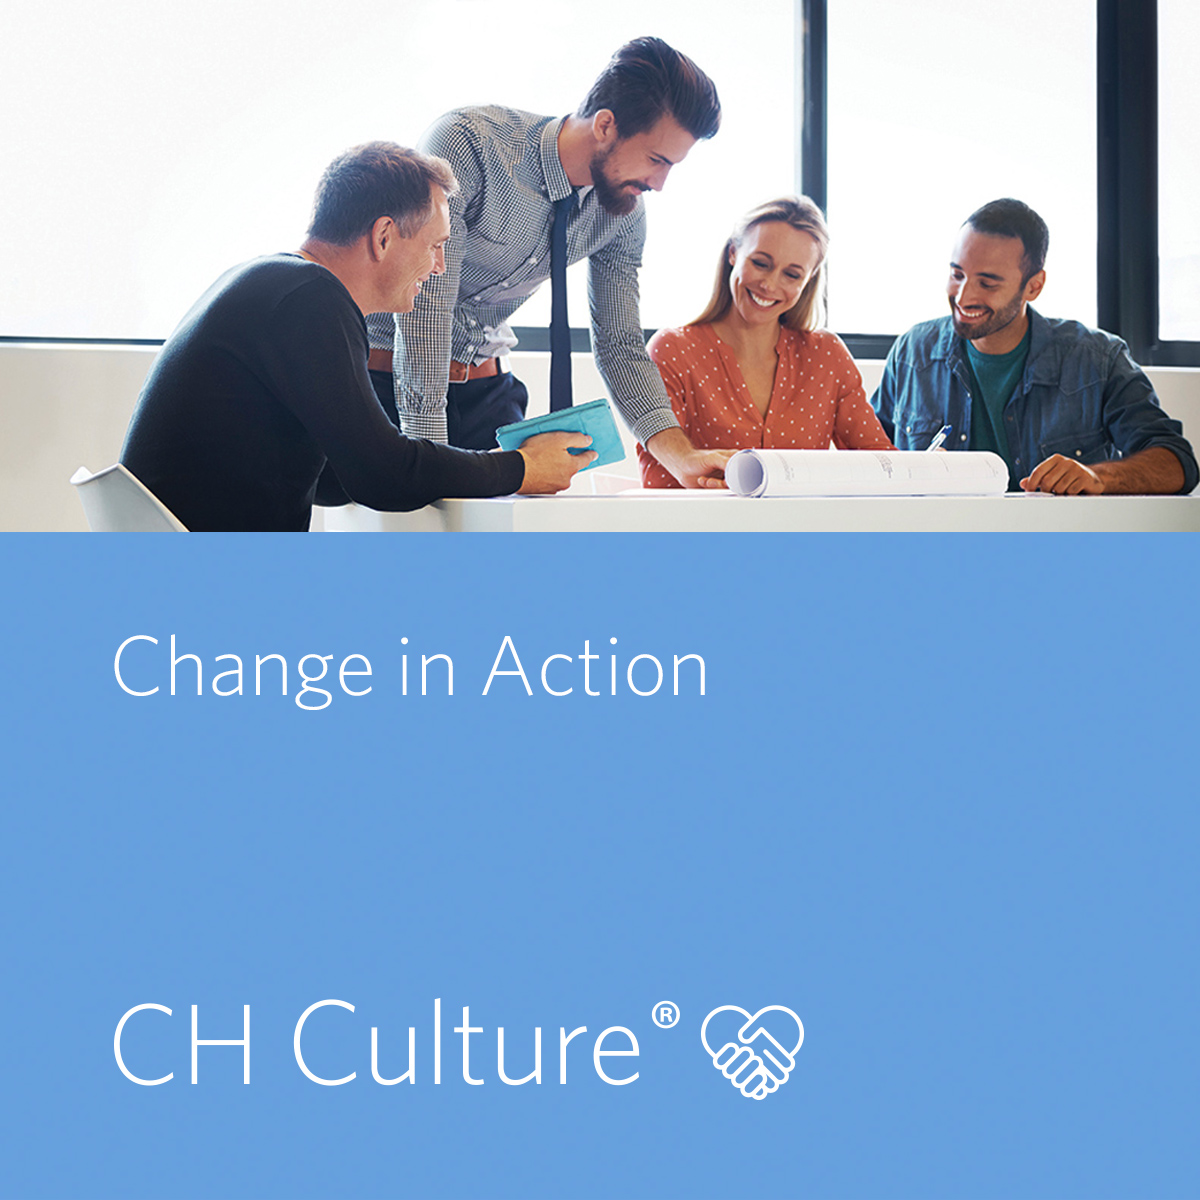 CH Culture: Change in action